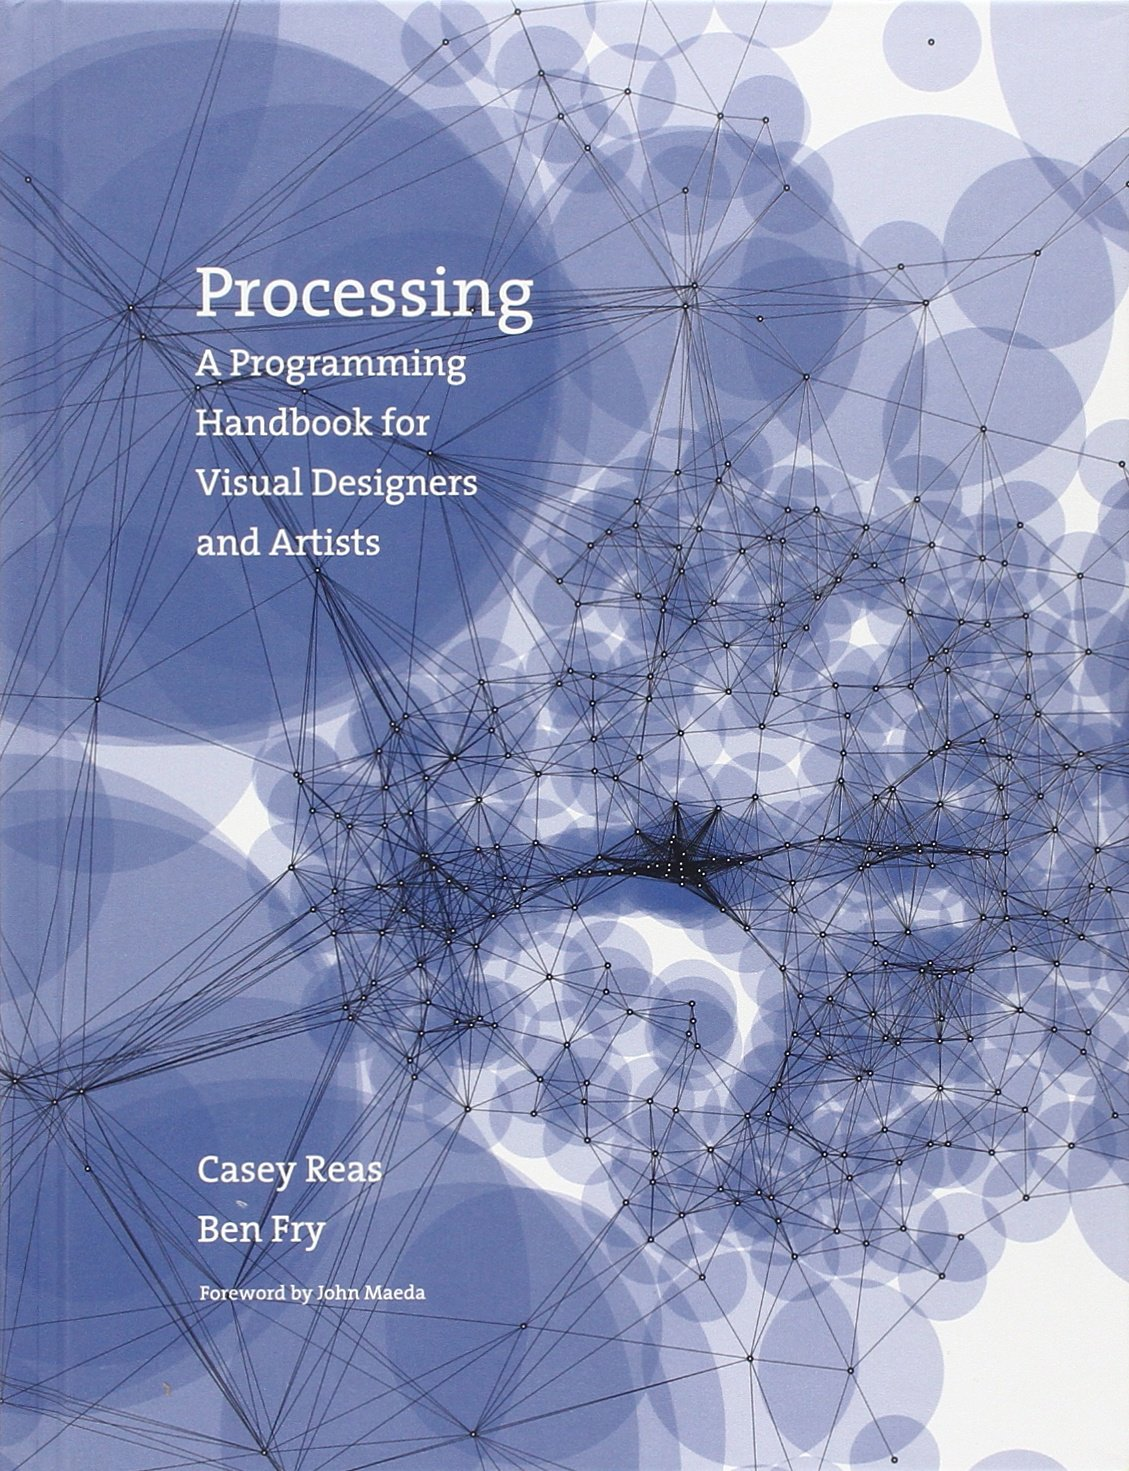 Processing: A Programming Handbook for Visual Designers and Artists by The MIT Press